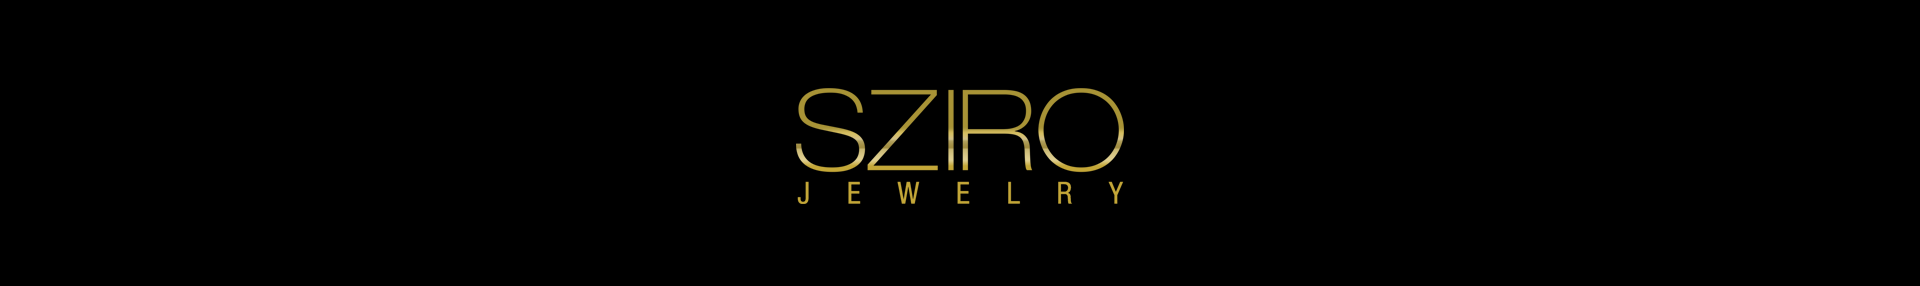 Best Selling Jewelry by Sziro Jewelry Designs of Coral Springs